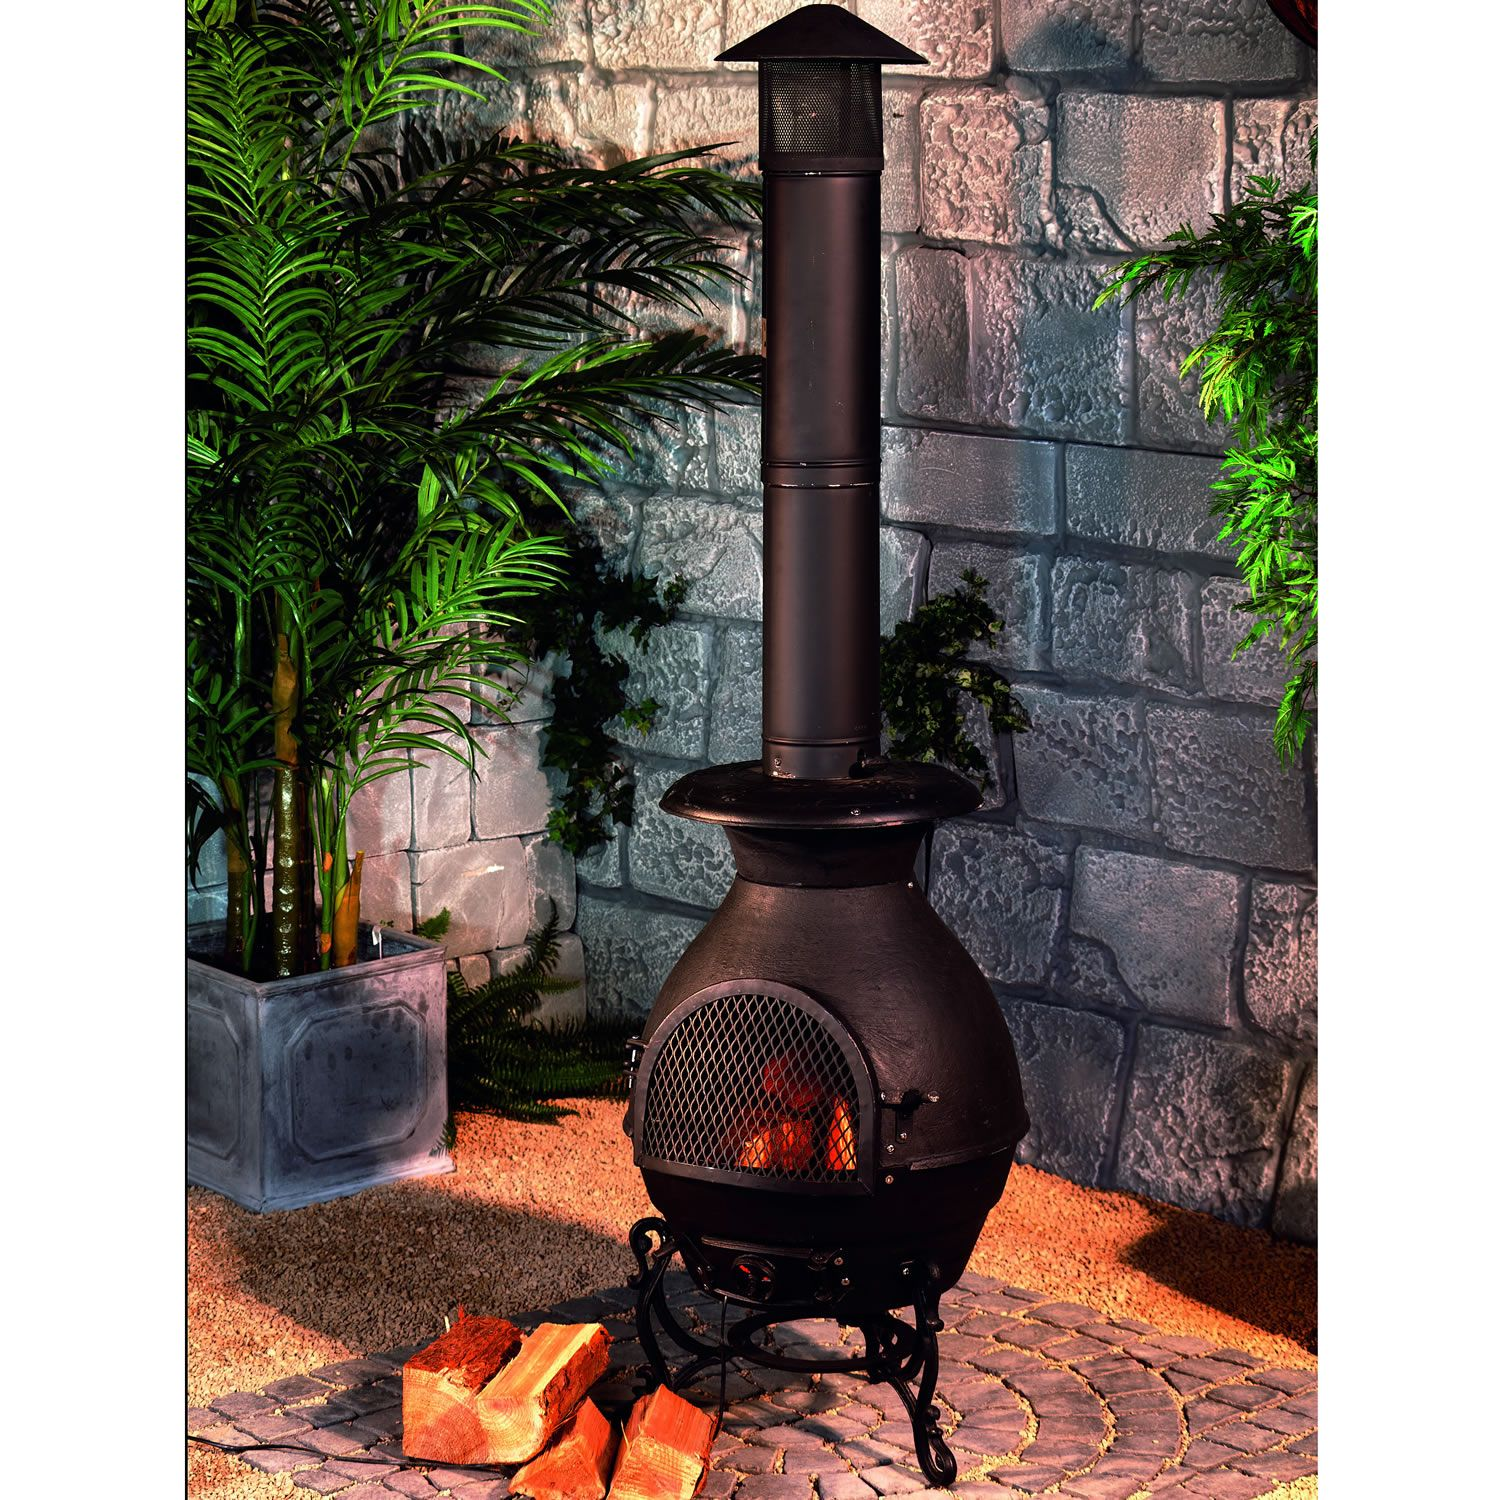 chiminea burner black worldstores garden pinterest